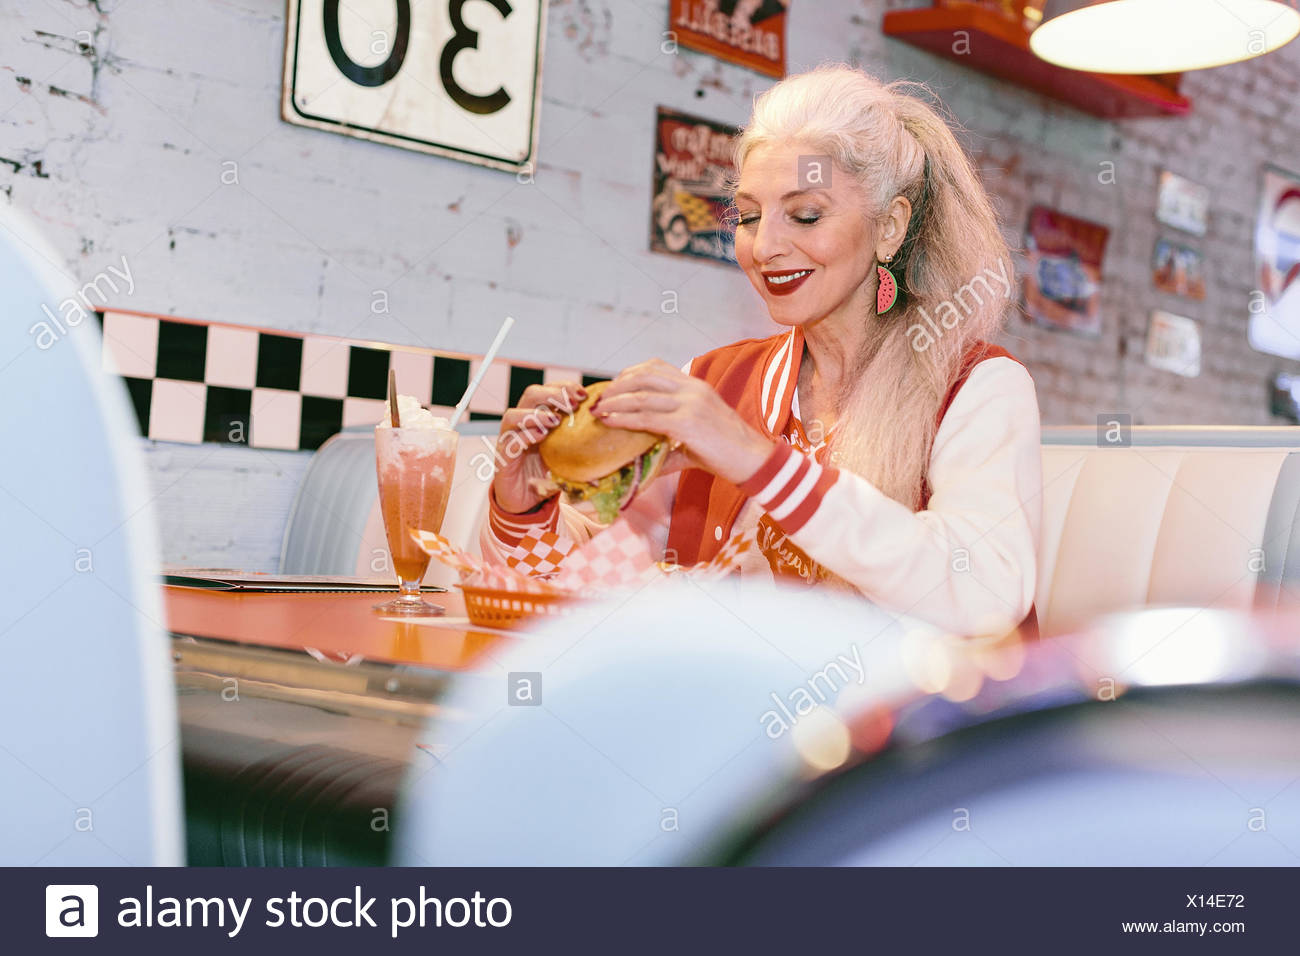 Mature woman in baseball jacket eating burger in 1950's diner - Stock Image